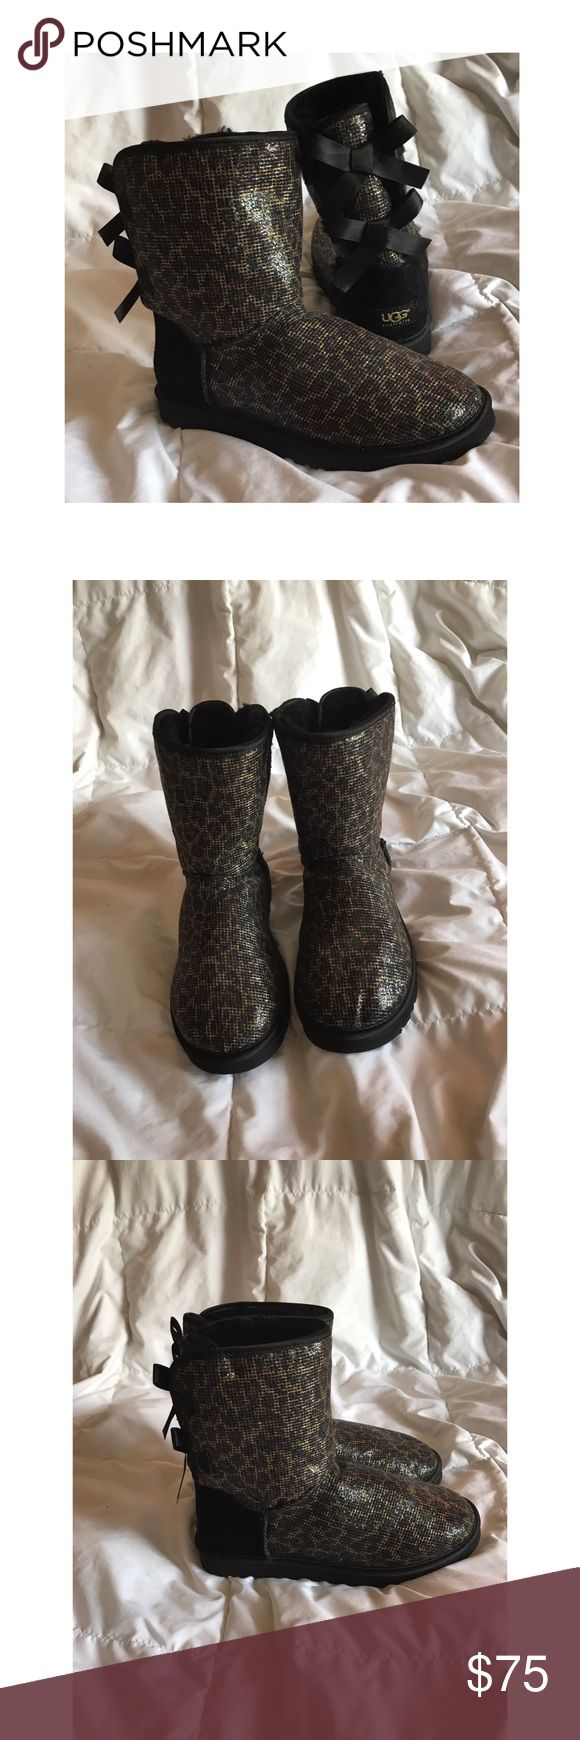 🐾Cheetah print UGG BOOTS 🐾 Authentic cheetah print ugg boots size 8 glittery, and has bows on the back, no stains or rips! It's in excellent condition!! UGG Shoes Winter & Rain Boots